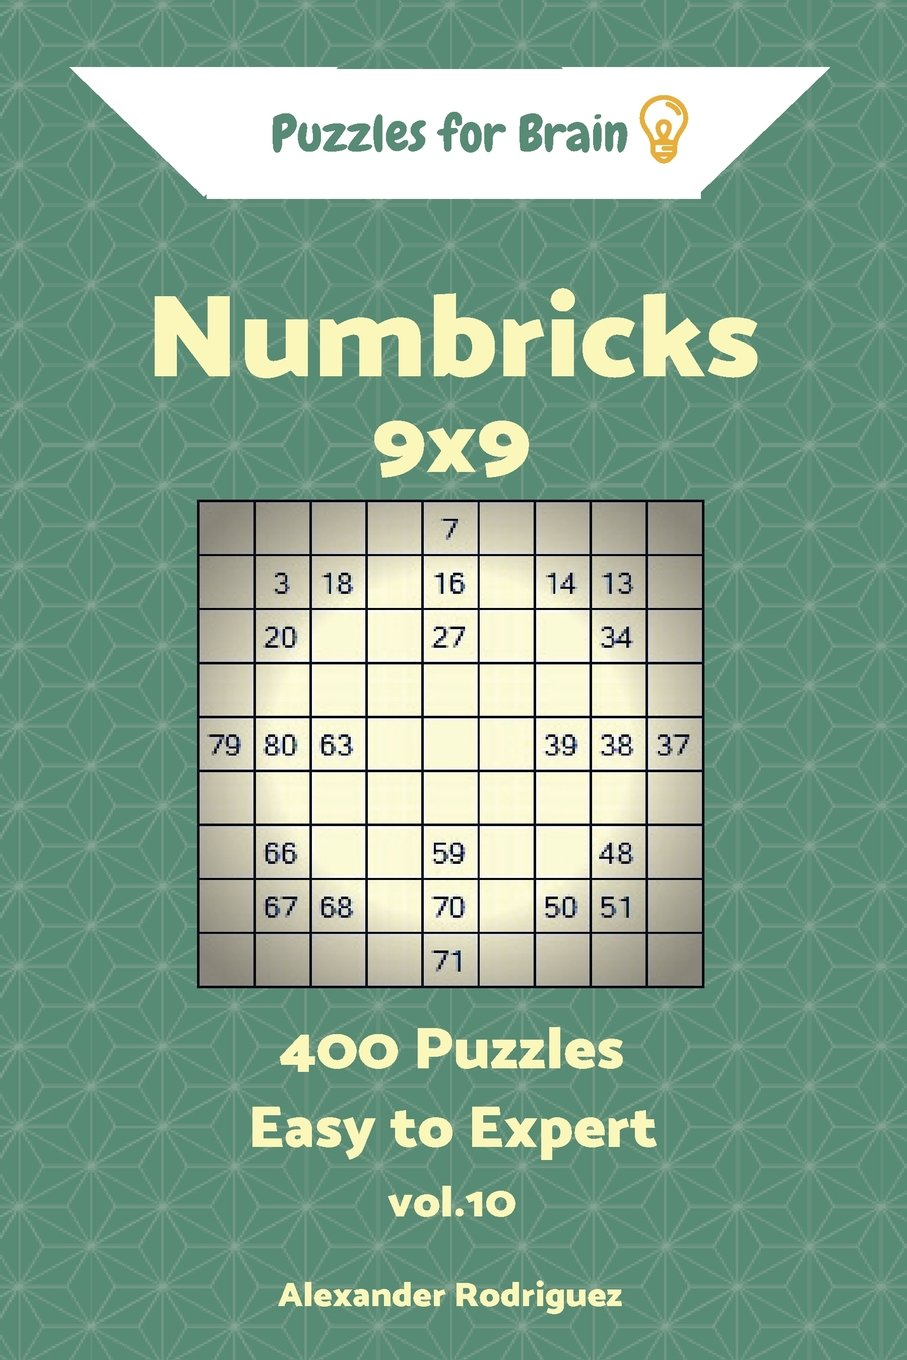 Puzzles for Brain Numbricks - 400 Easy to Expert 9x9 vol. 10 (Volume 10) ebook